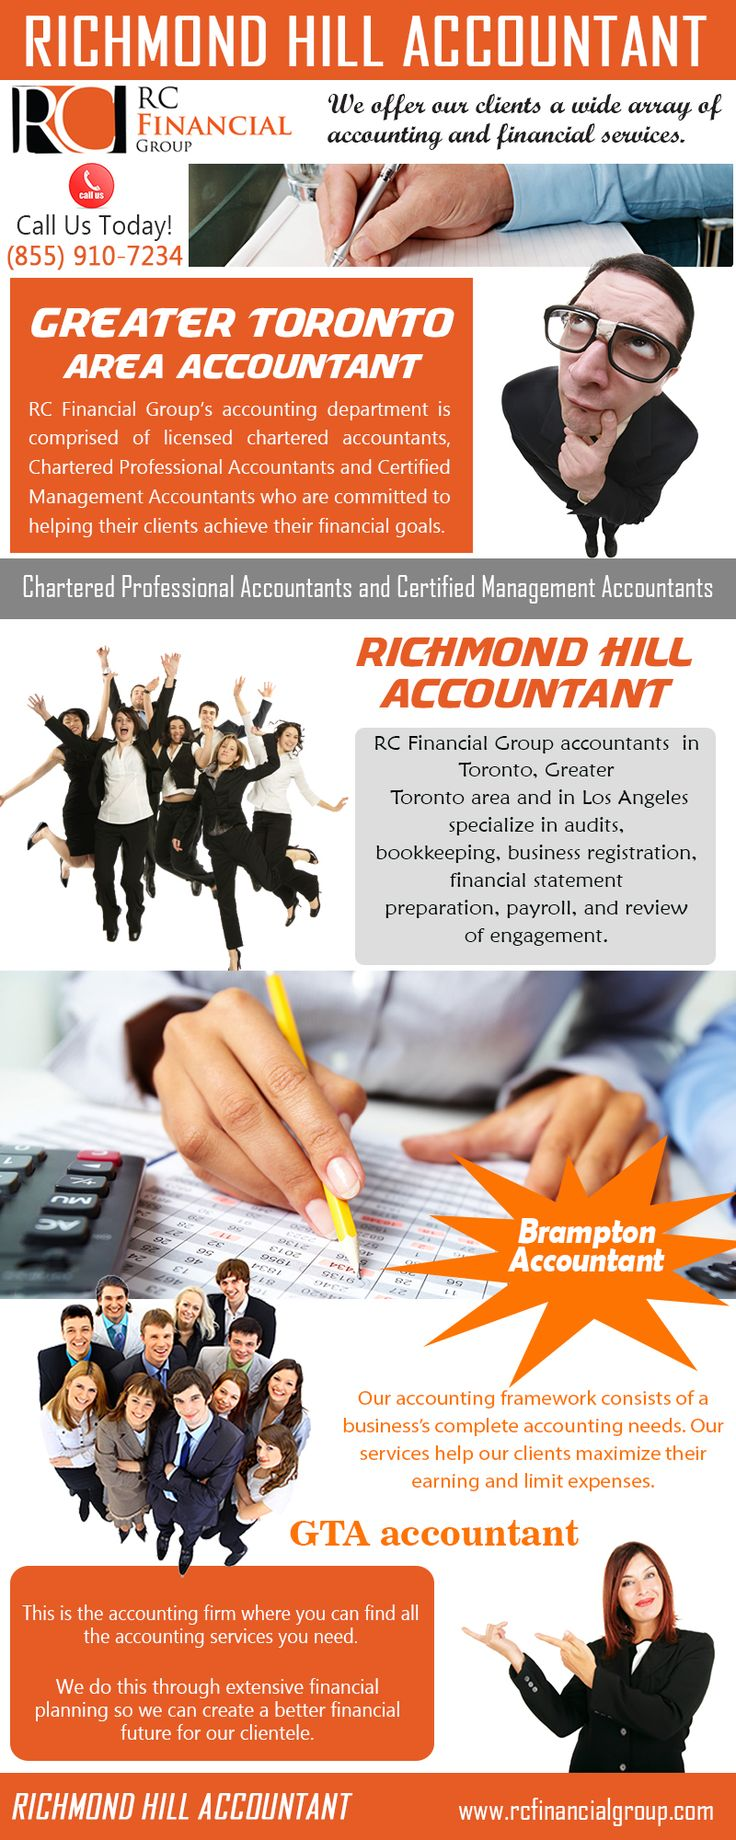 Sneak a peek at this web-site http://rcfinancialgroup.com/accounting/ for more information on Greater Toronto Area Accountant. Greater Toronto Area Accountants or GTA Accountants at GTA Accounting Company/Firm, RC Financial Group specializes in Accounting, Taxation; Business Consulting our firm also offers US Taxation and IRS Representation related services. We are here to assist you with your personal accounting, small business accounting and other finance needs.